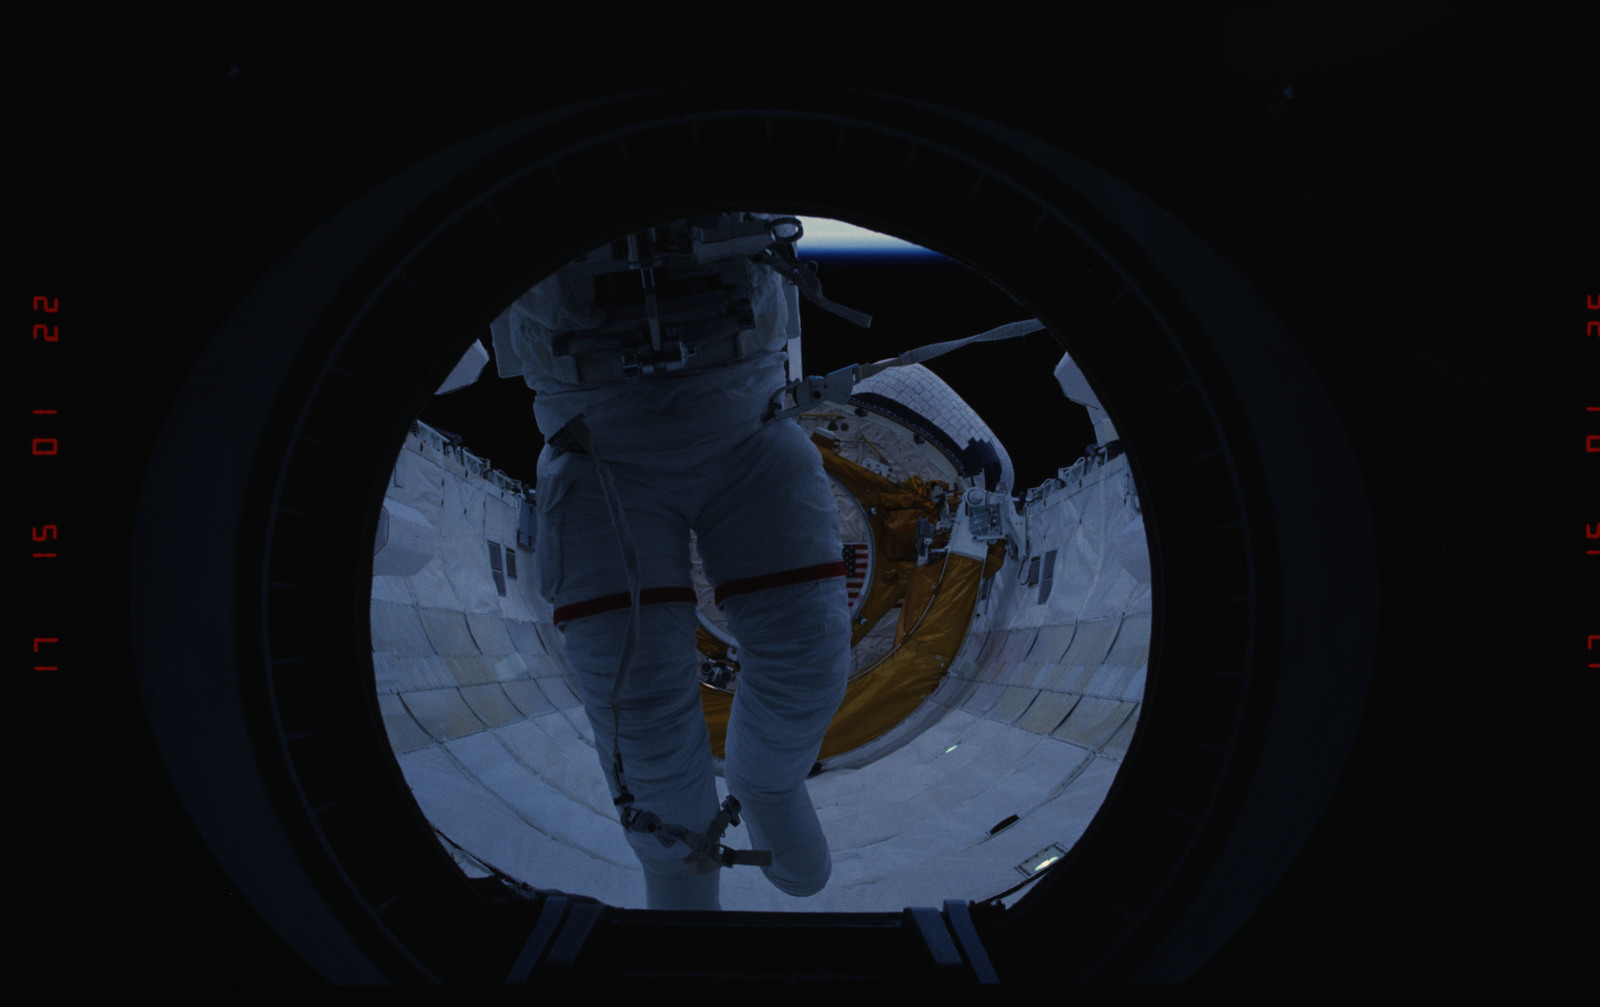 STS054-05-013 - STS-054 - Views of EVA Crewmembers in the payload bay returning to middeck air lock.